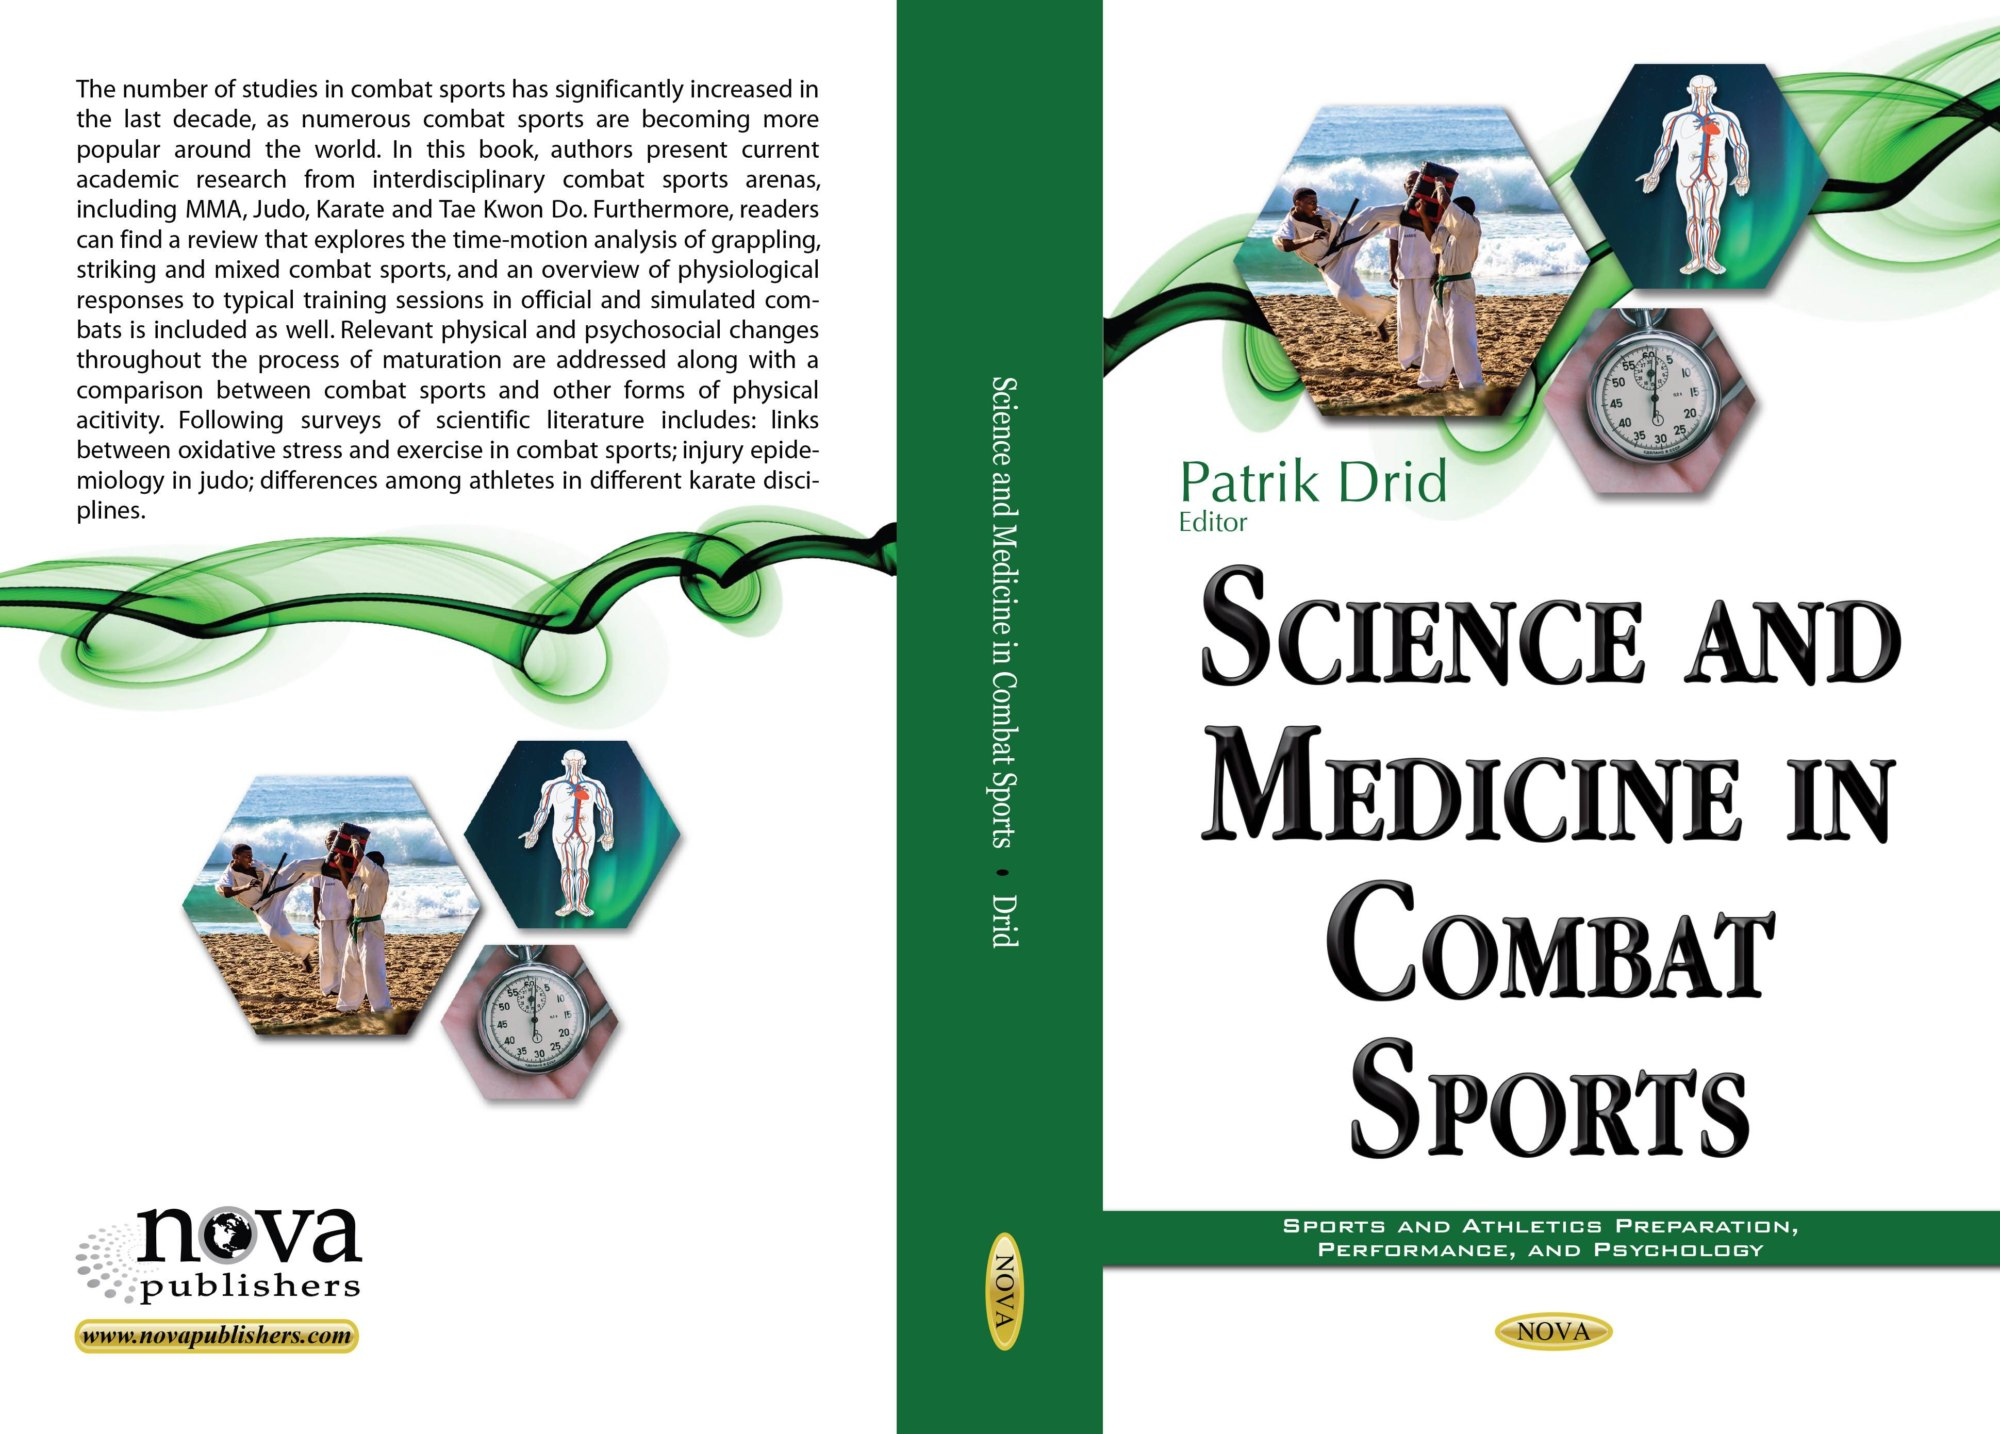 Science and Medicine in Combar Sports